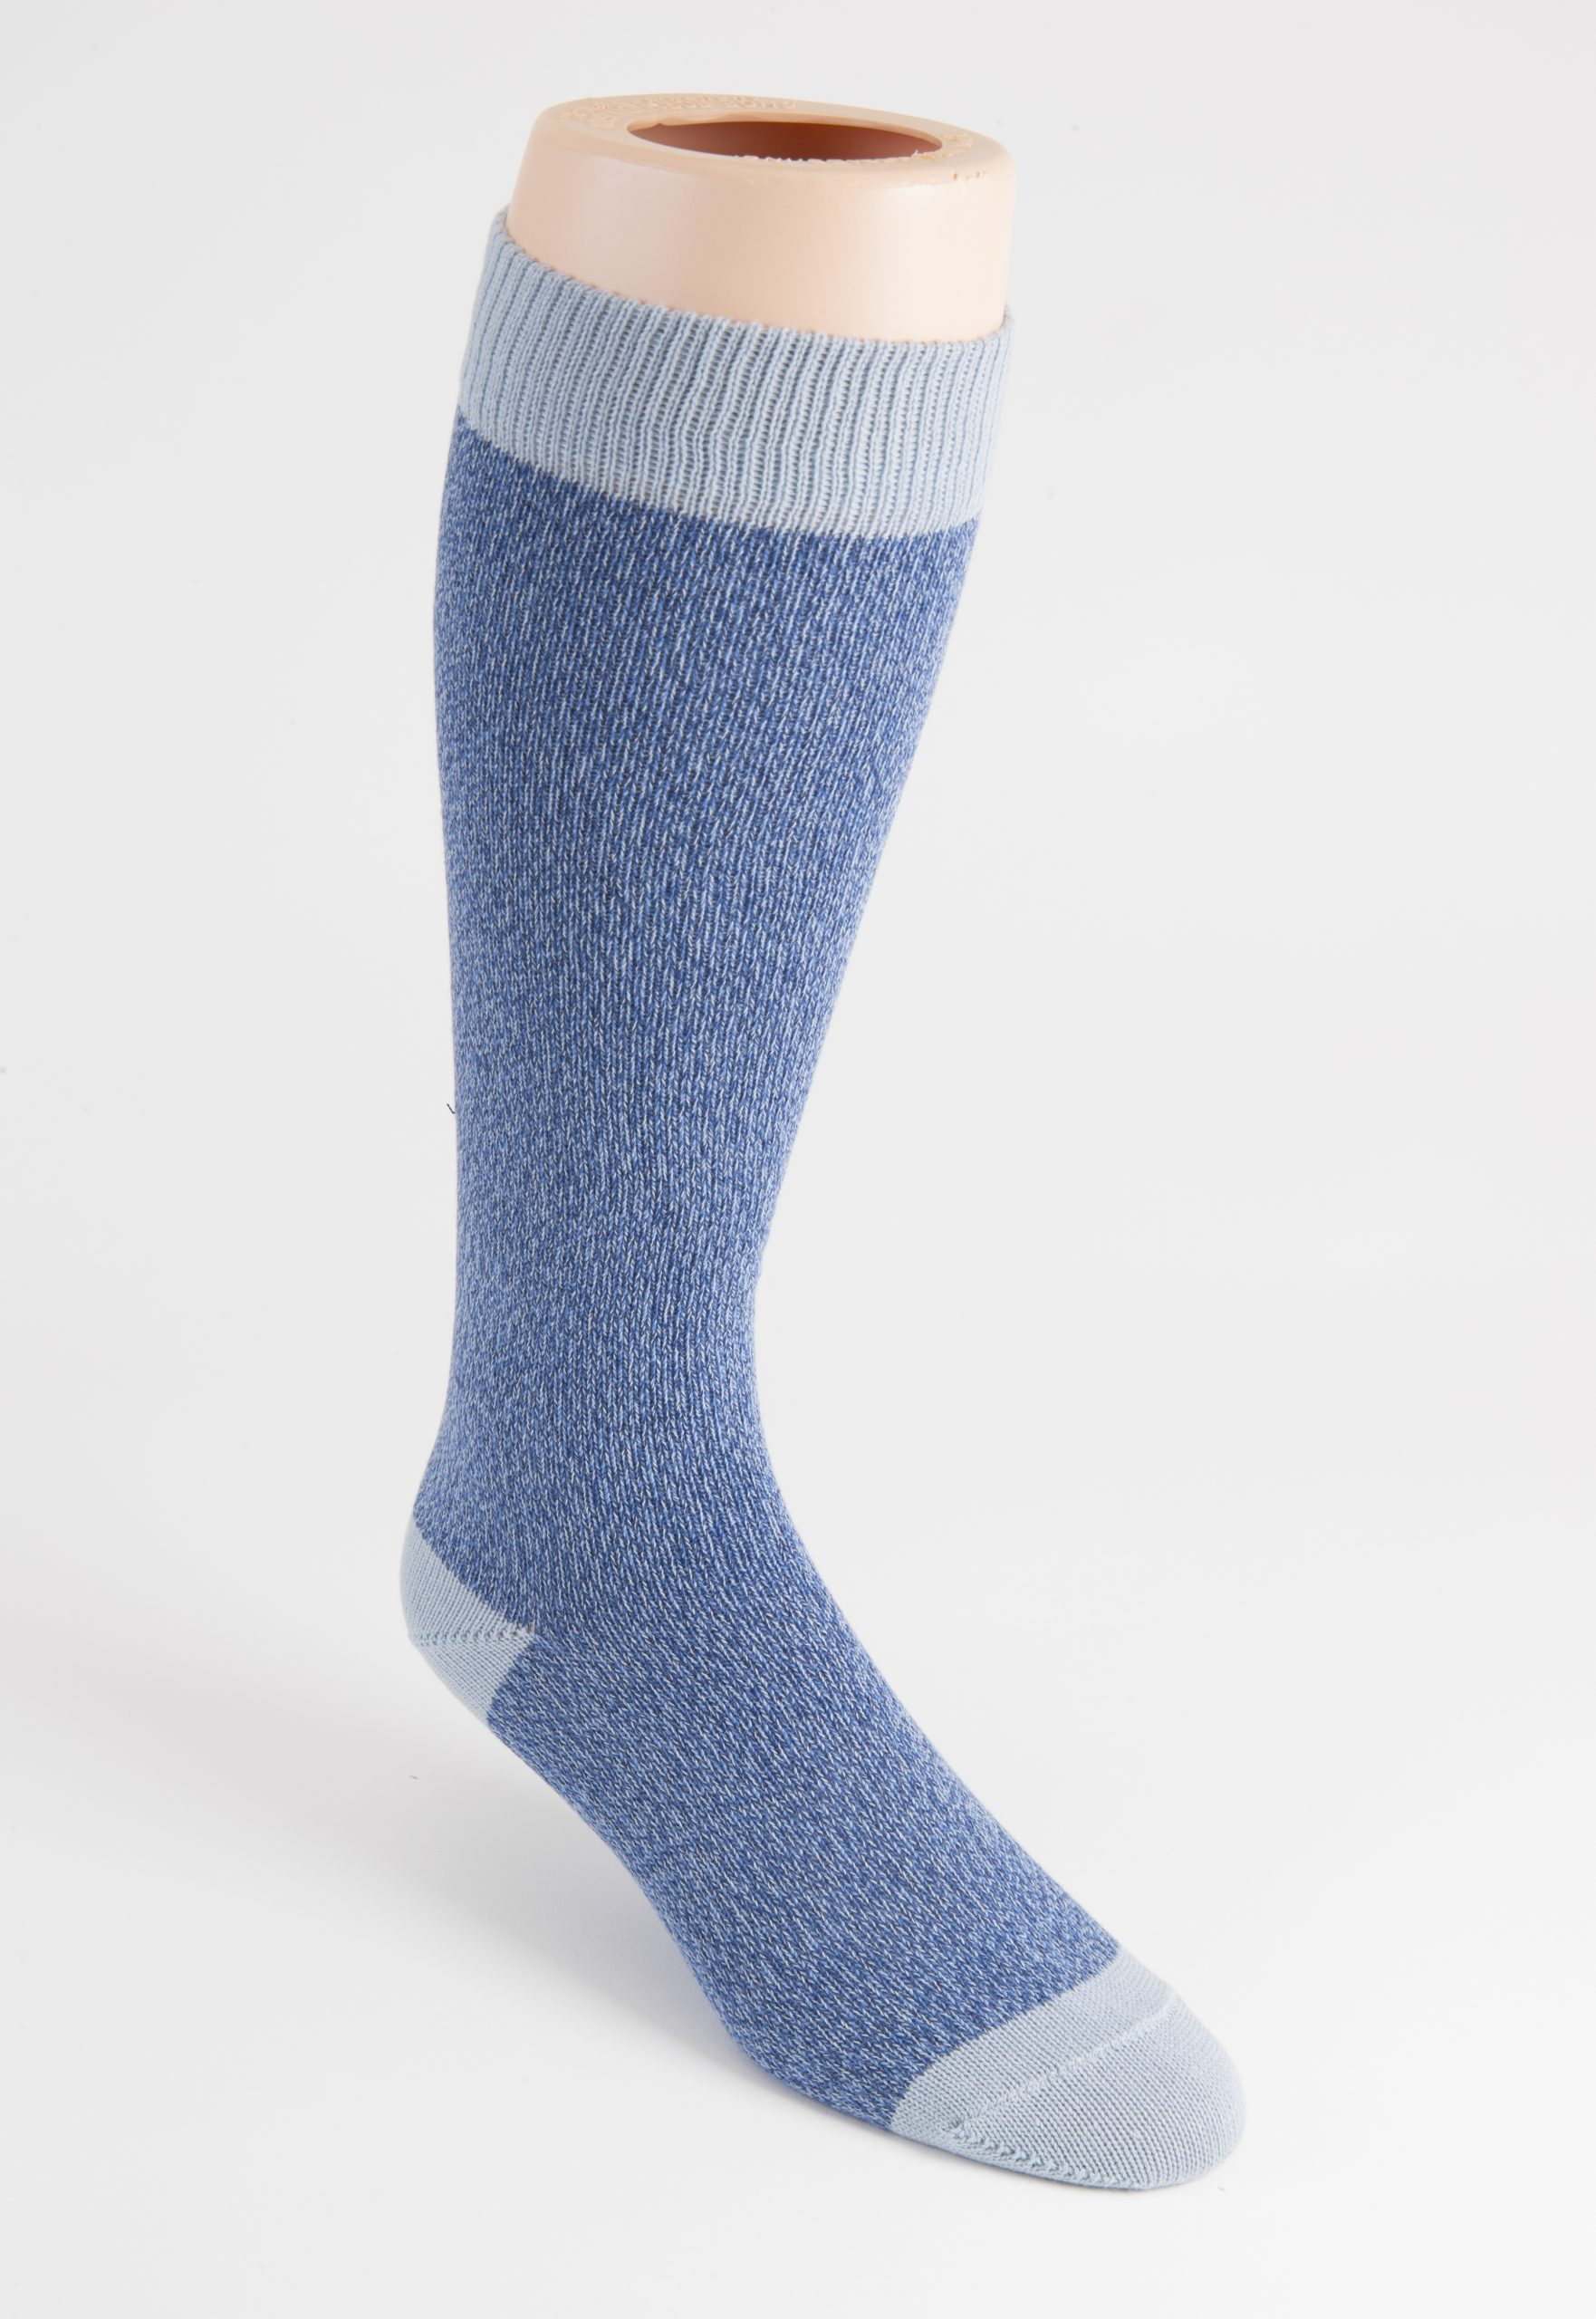 mens long cotton marl socks